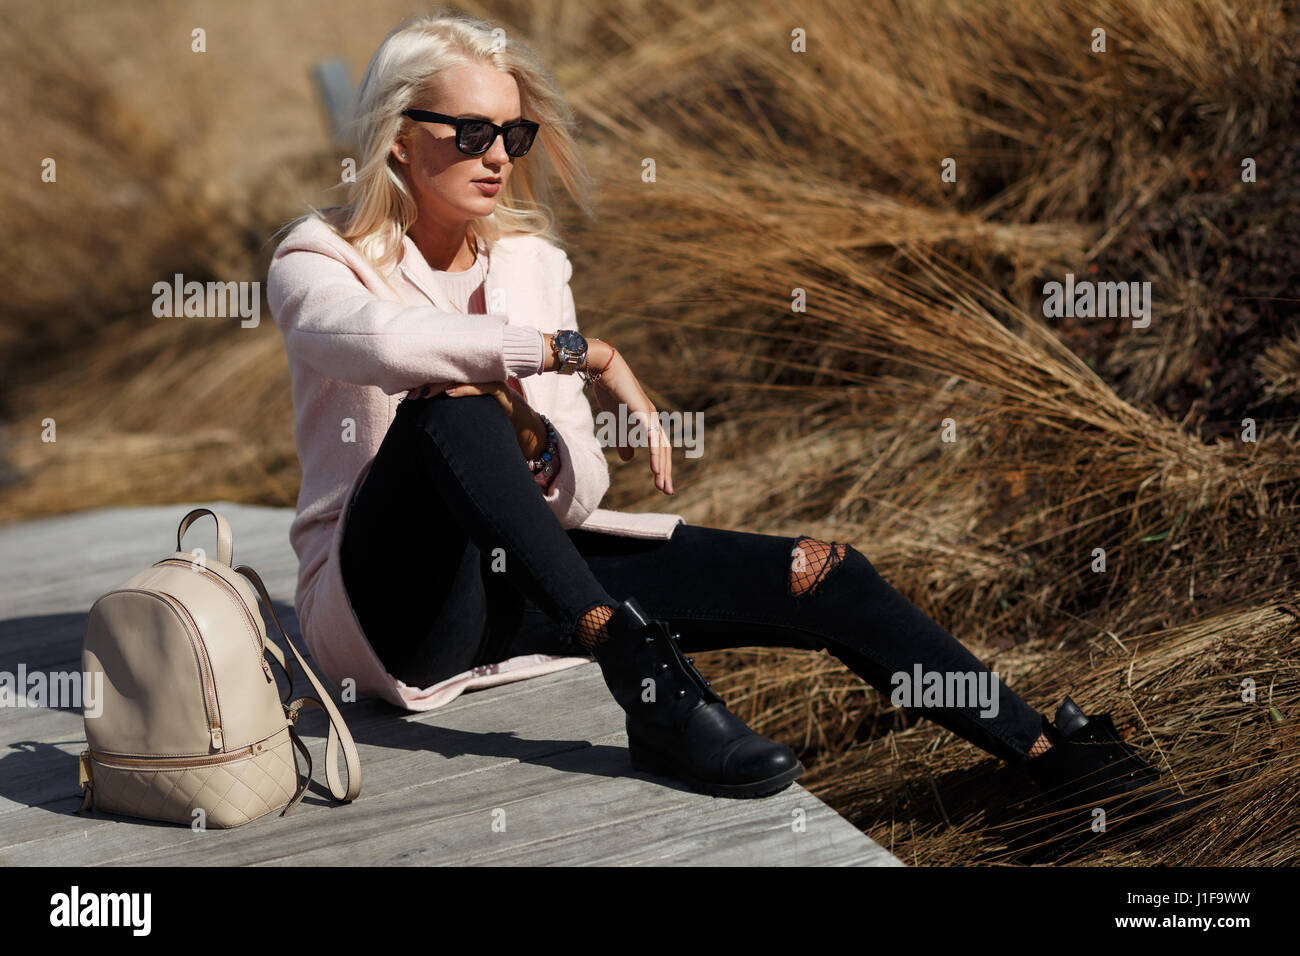 Girl in sunglasses with backpack - Stock Image